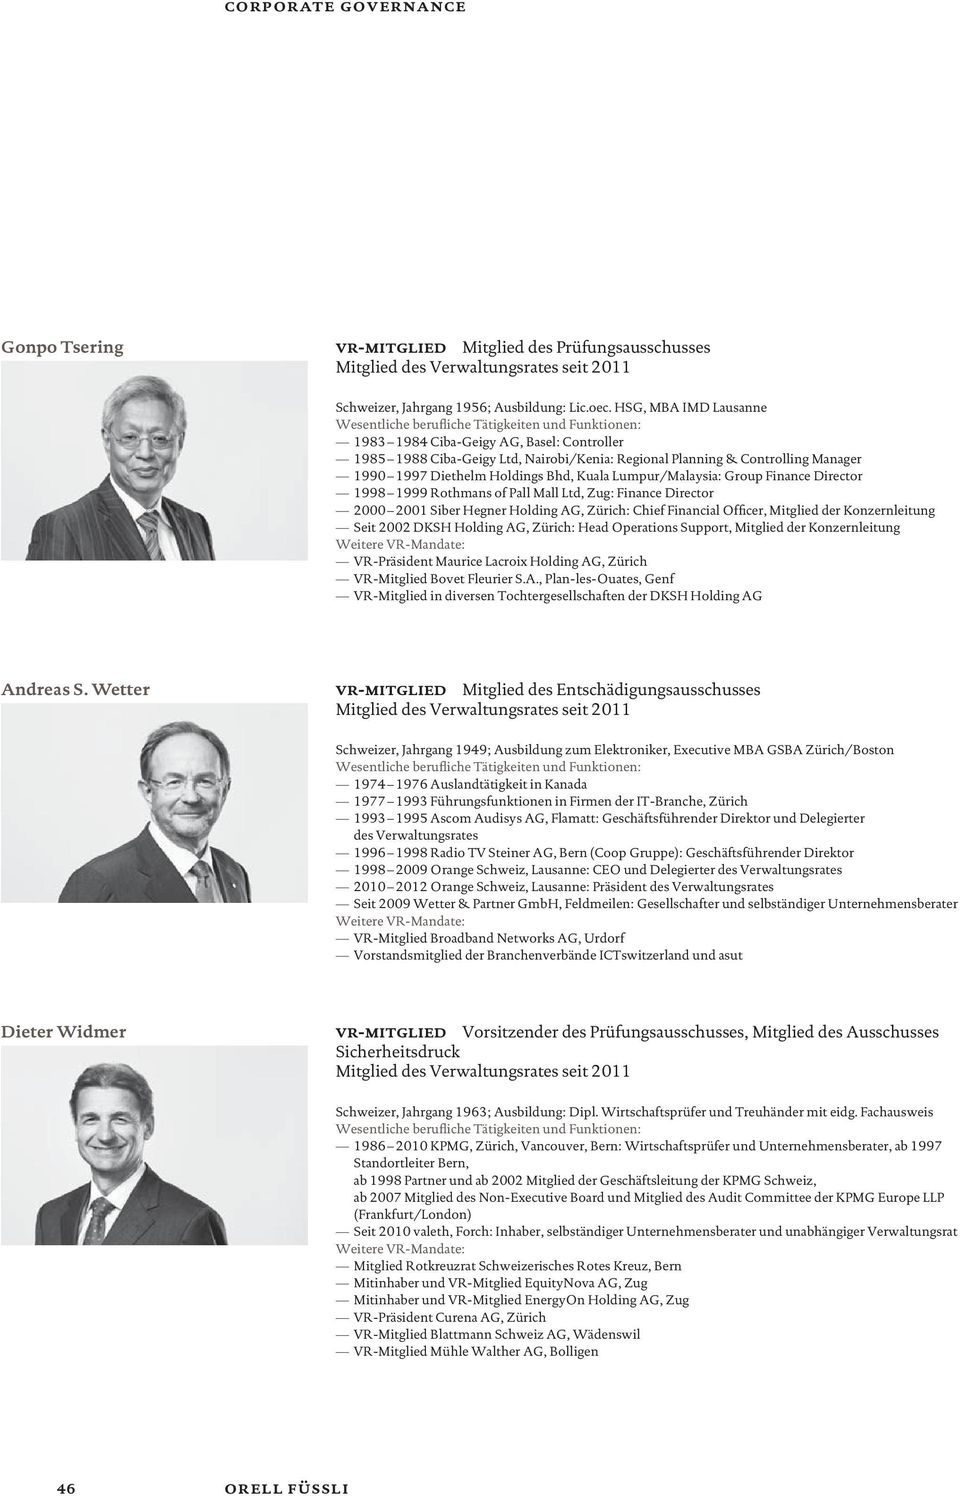 Lumpur/Malaysia: Group Finance Director 1998 1999 Rothmans of Pall Mall Ltd, Zug: Finance Director 2000 2001 Siber Hegner Holding AG, Zürich: Chief Financial Officer, Mitglied der Konzernleitung Seit